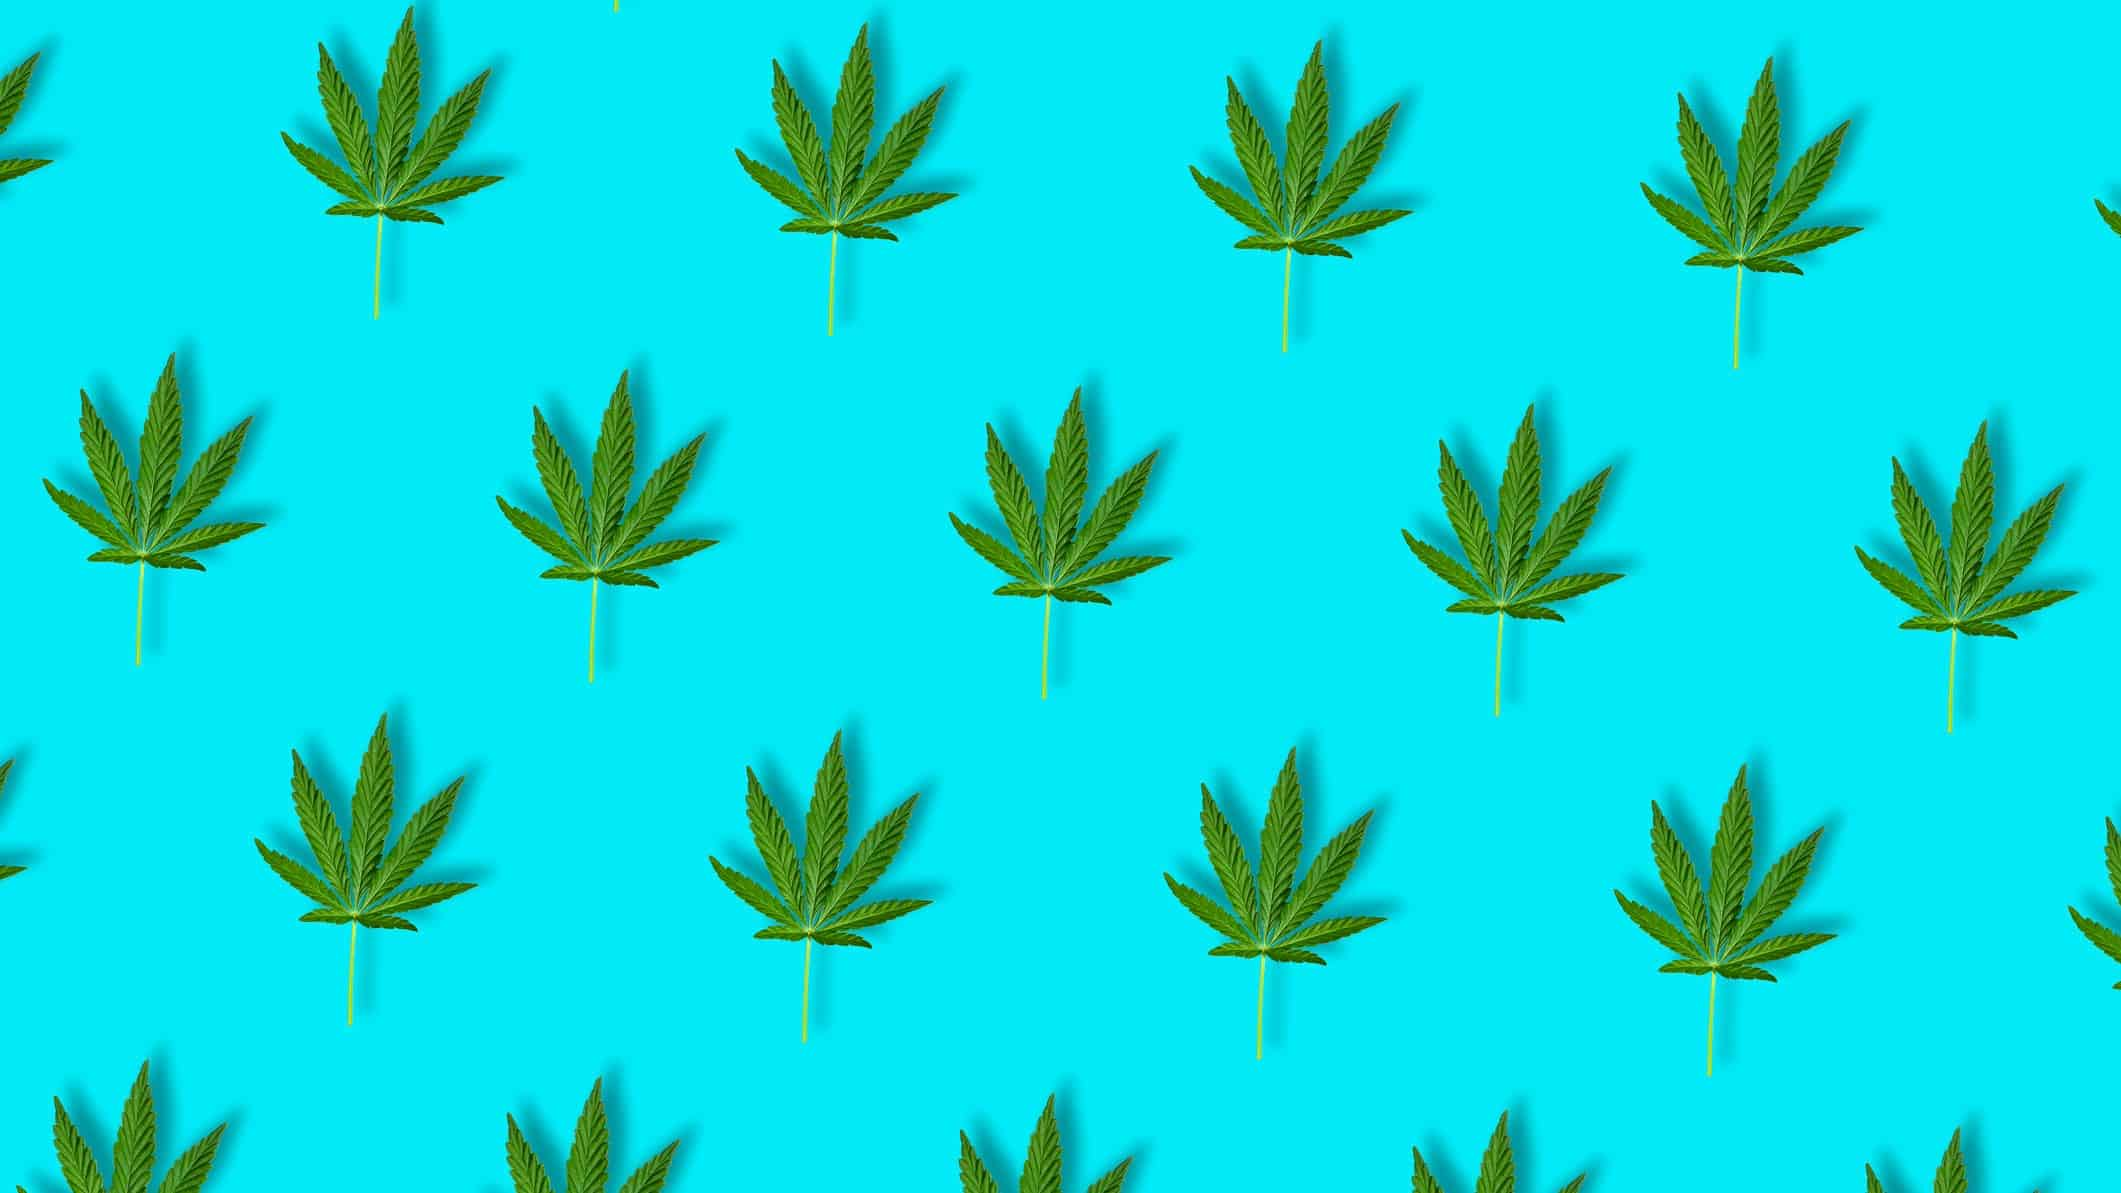 cannabis asx share price represented by lots of cannabis leaves against bright blue background